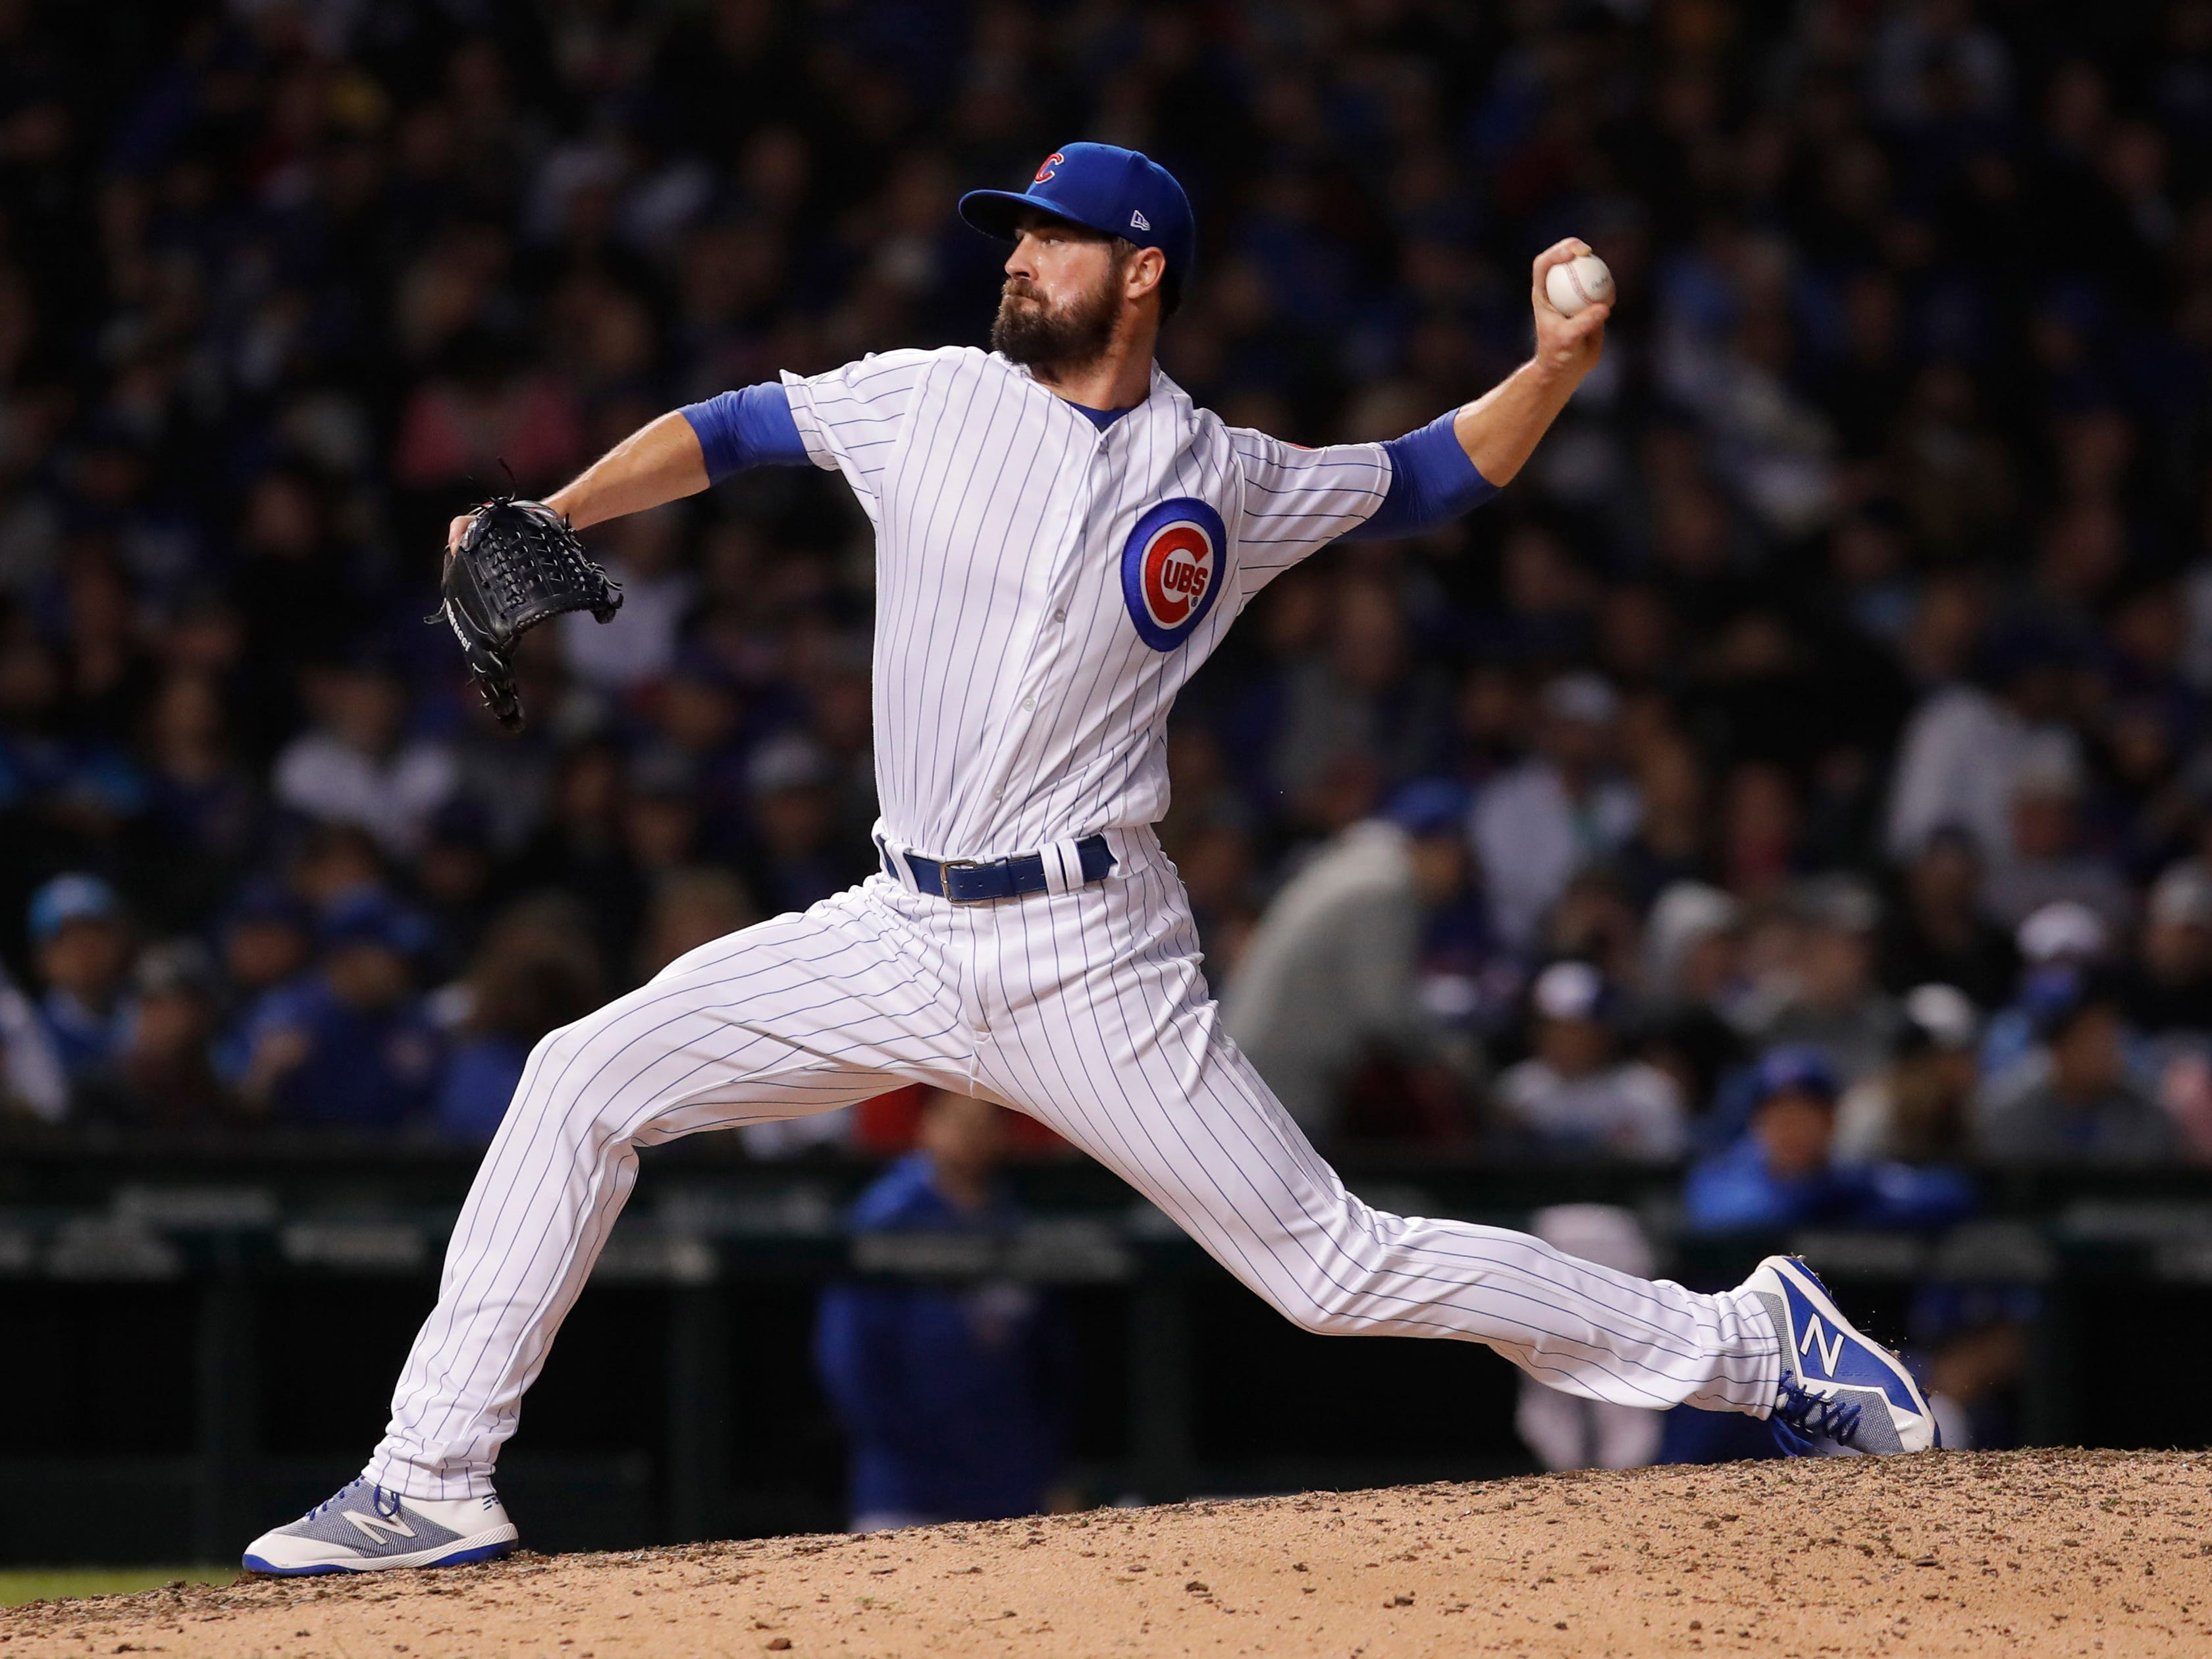 Oct 2, 2018; Chicago, IL, USA; Chicago Cubs pitcher Cole Hamels throws a pitch against the Colorado Rockies in the 10th inning in the 2018 National League wild card playoff baseball game at Wrigley Field.